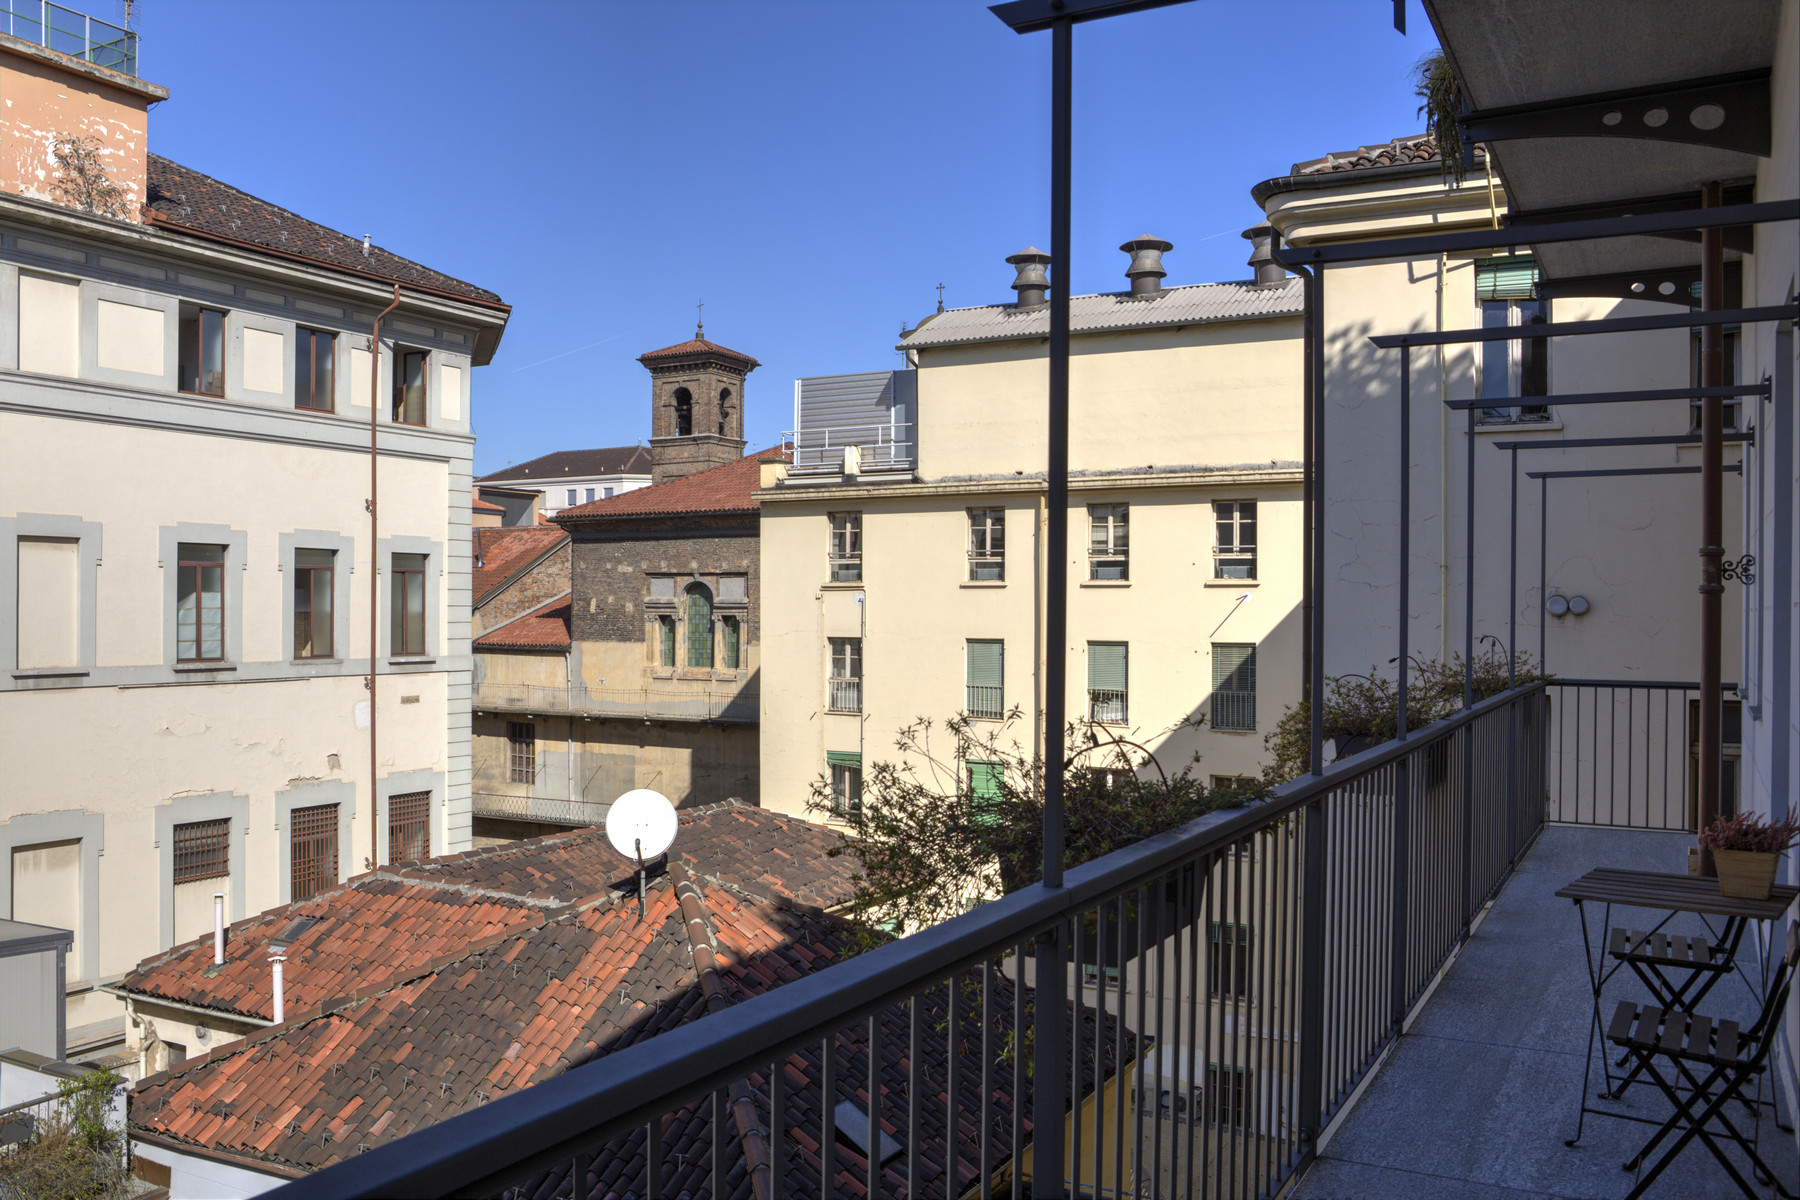 Additional photo for property listing at Exclusive Apartment a short walk from Piazza San Carlo Via Alfieri Torino, Turin 10121 Italia